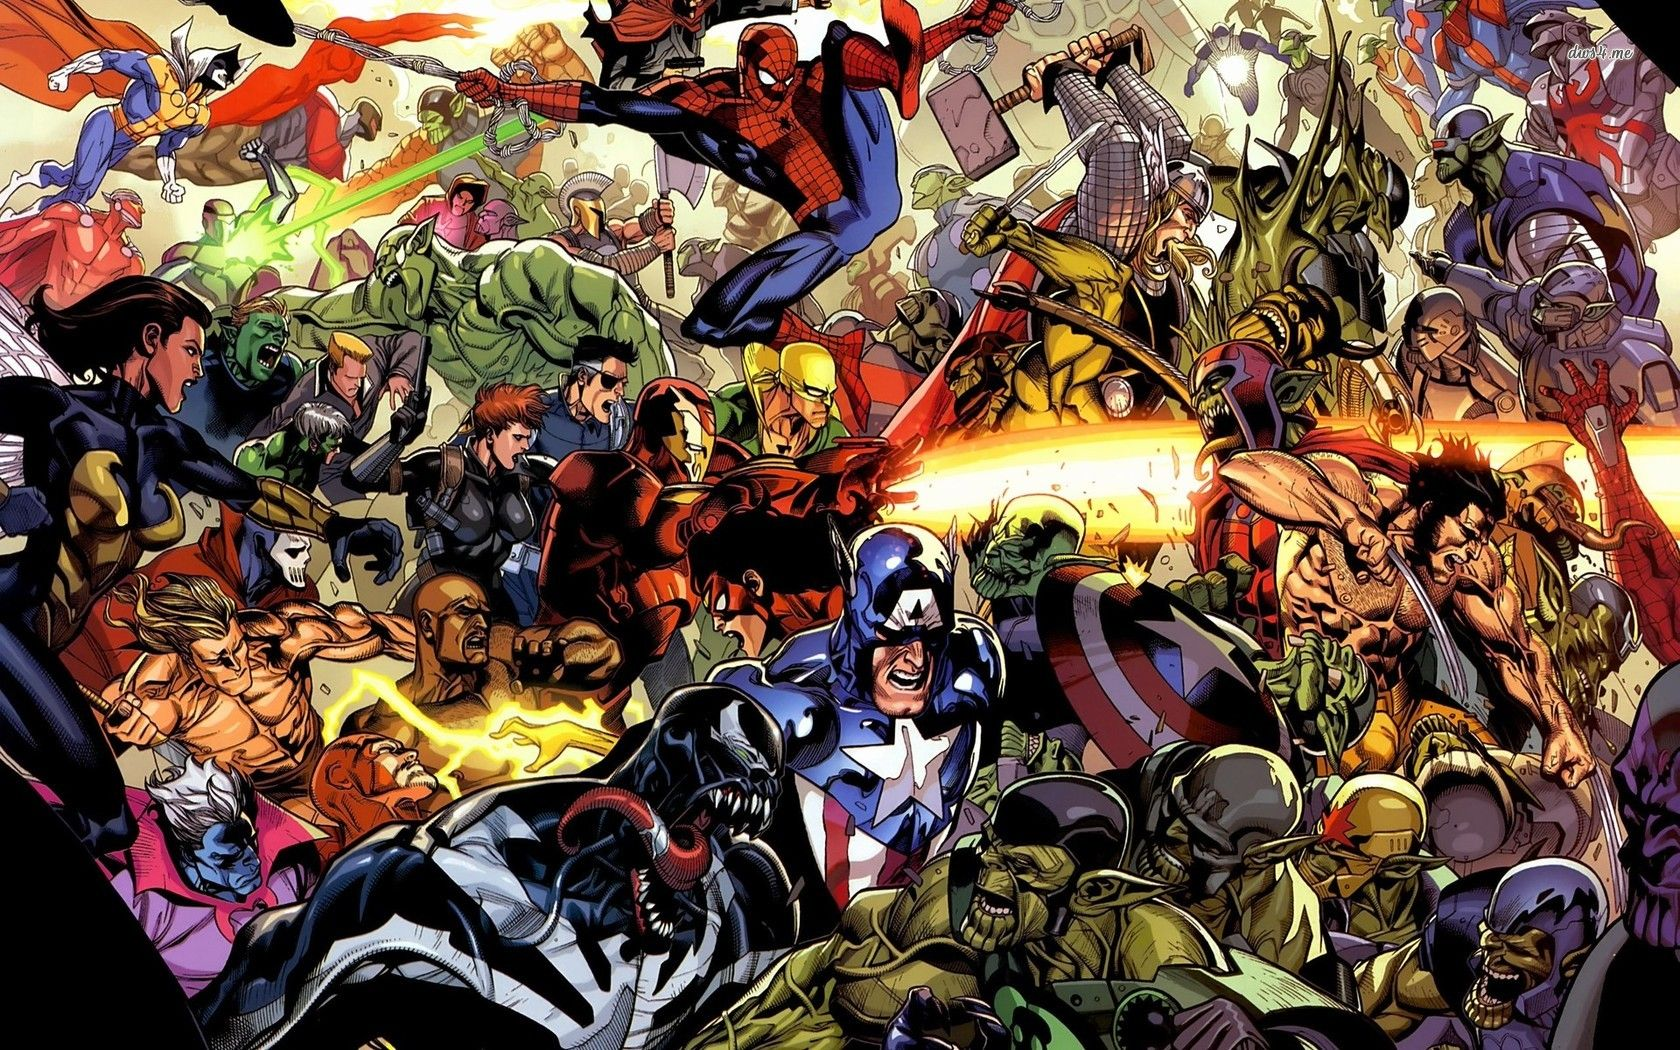 Marvel Comics Hd Wallpapers Backgrounds Wallpaper 23041408